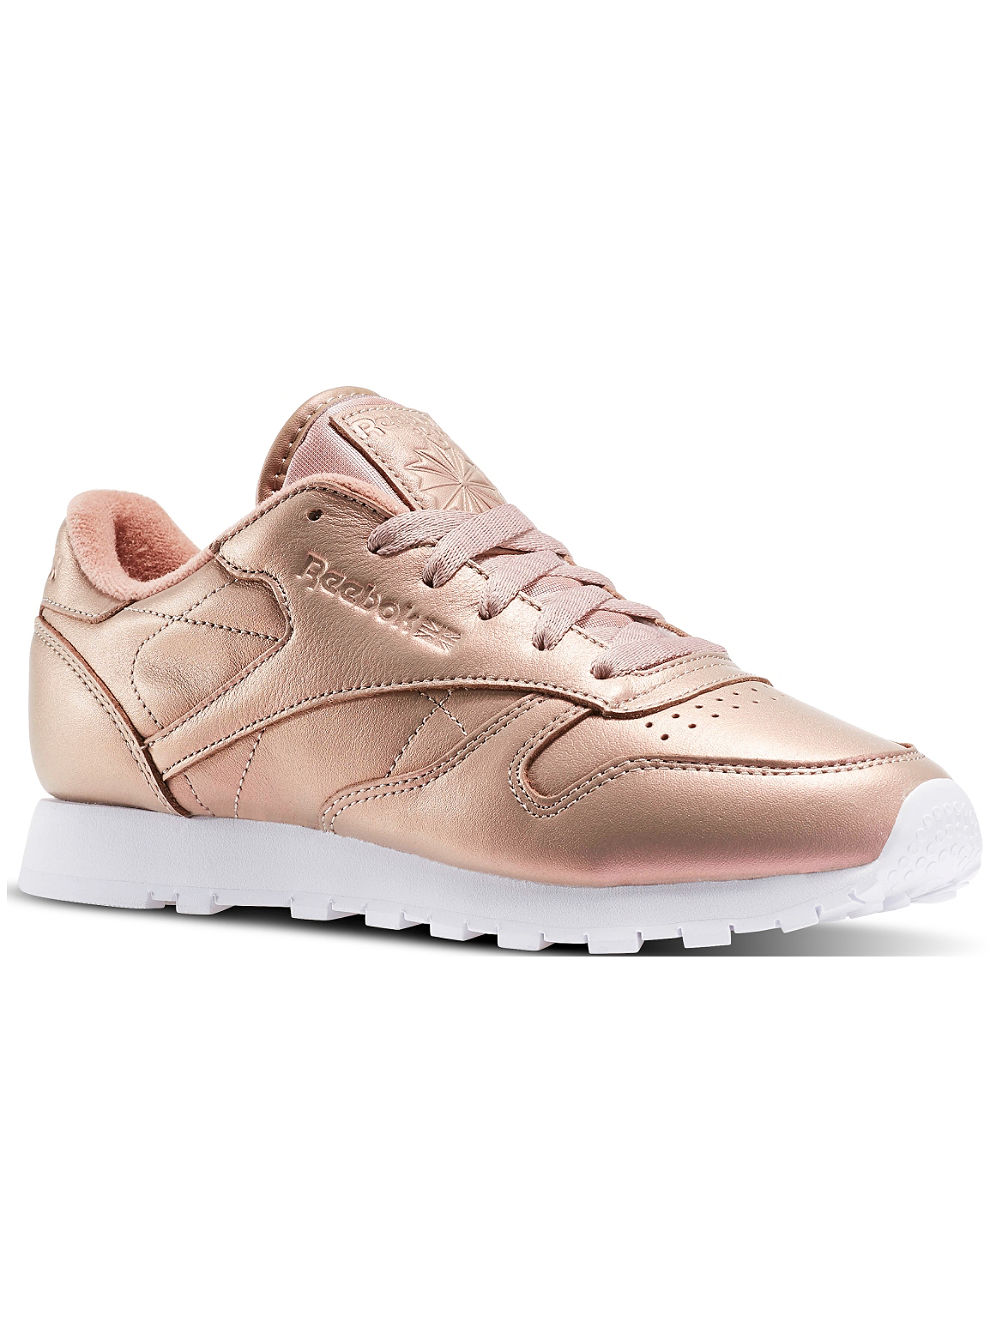 buy reebok classic leather pearlized sneakers women online. Black Bedroom Furniture Sets. Home Design Ideas